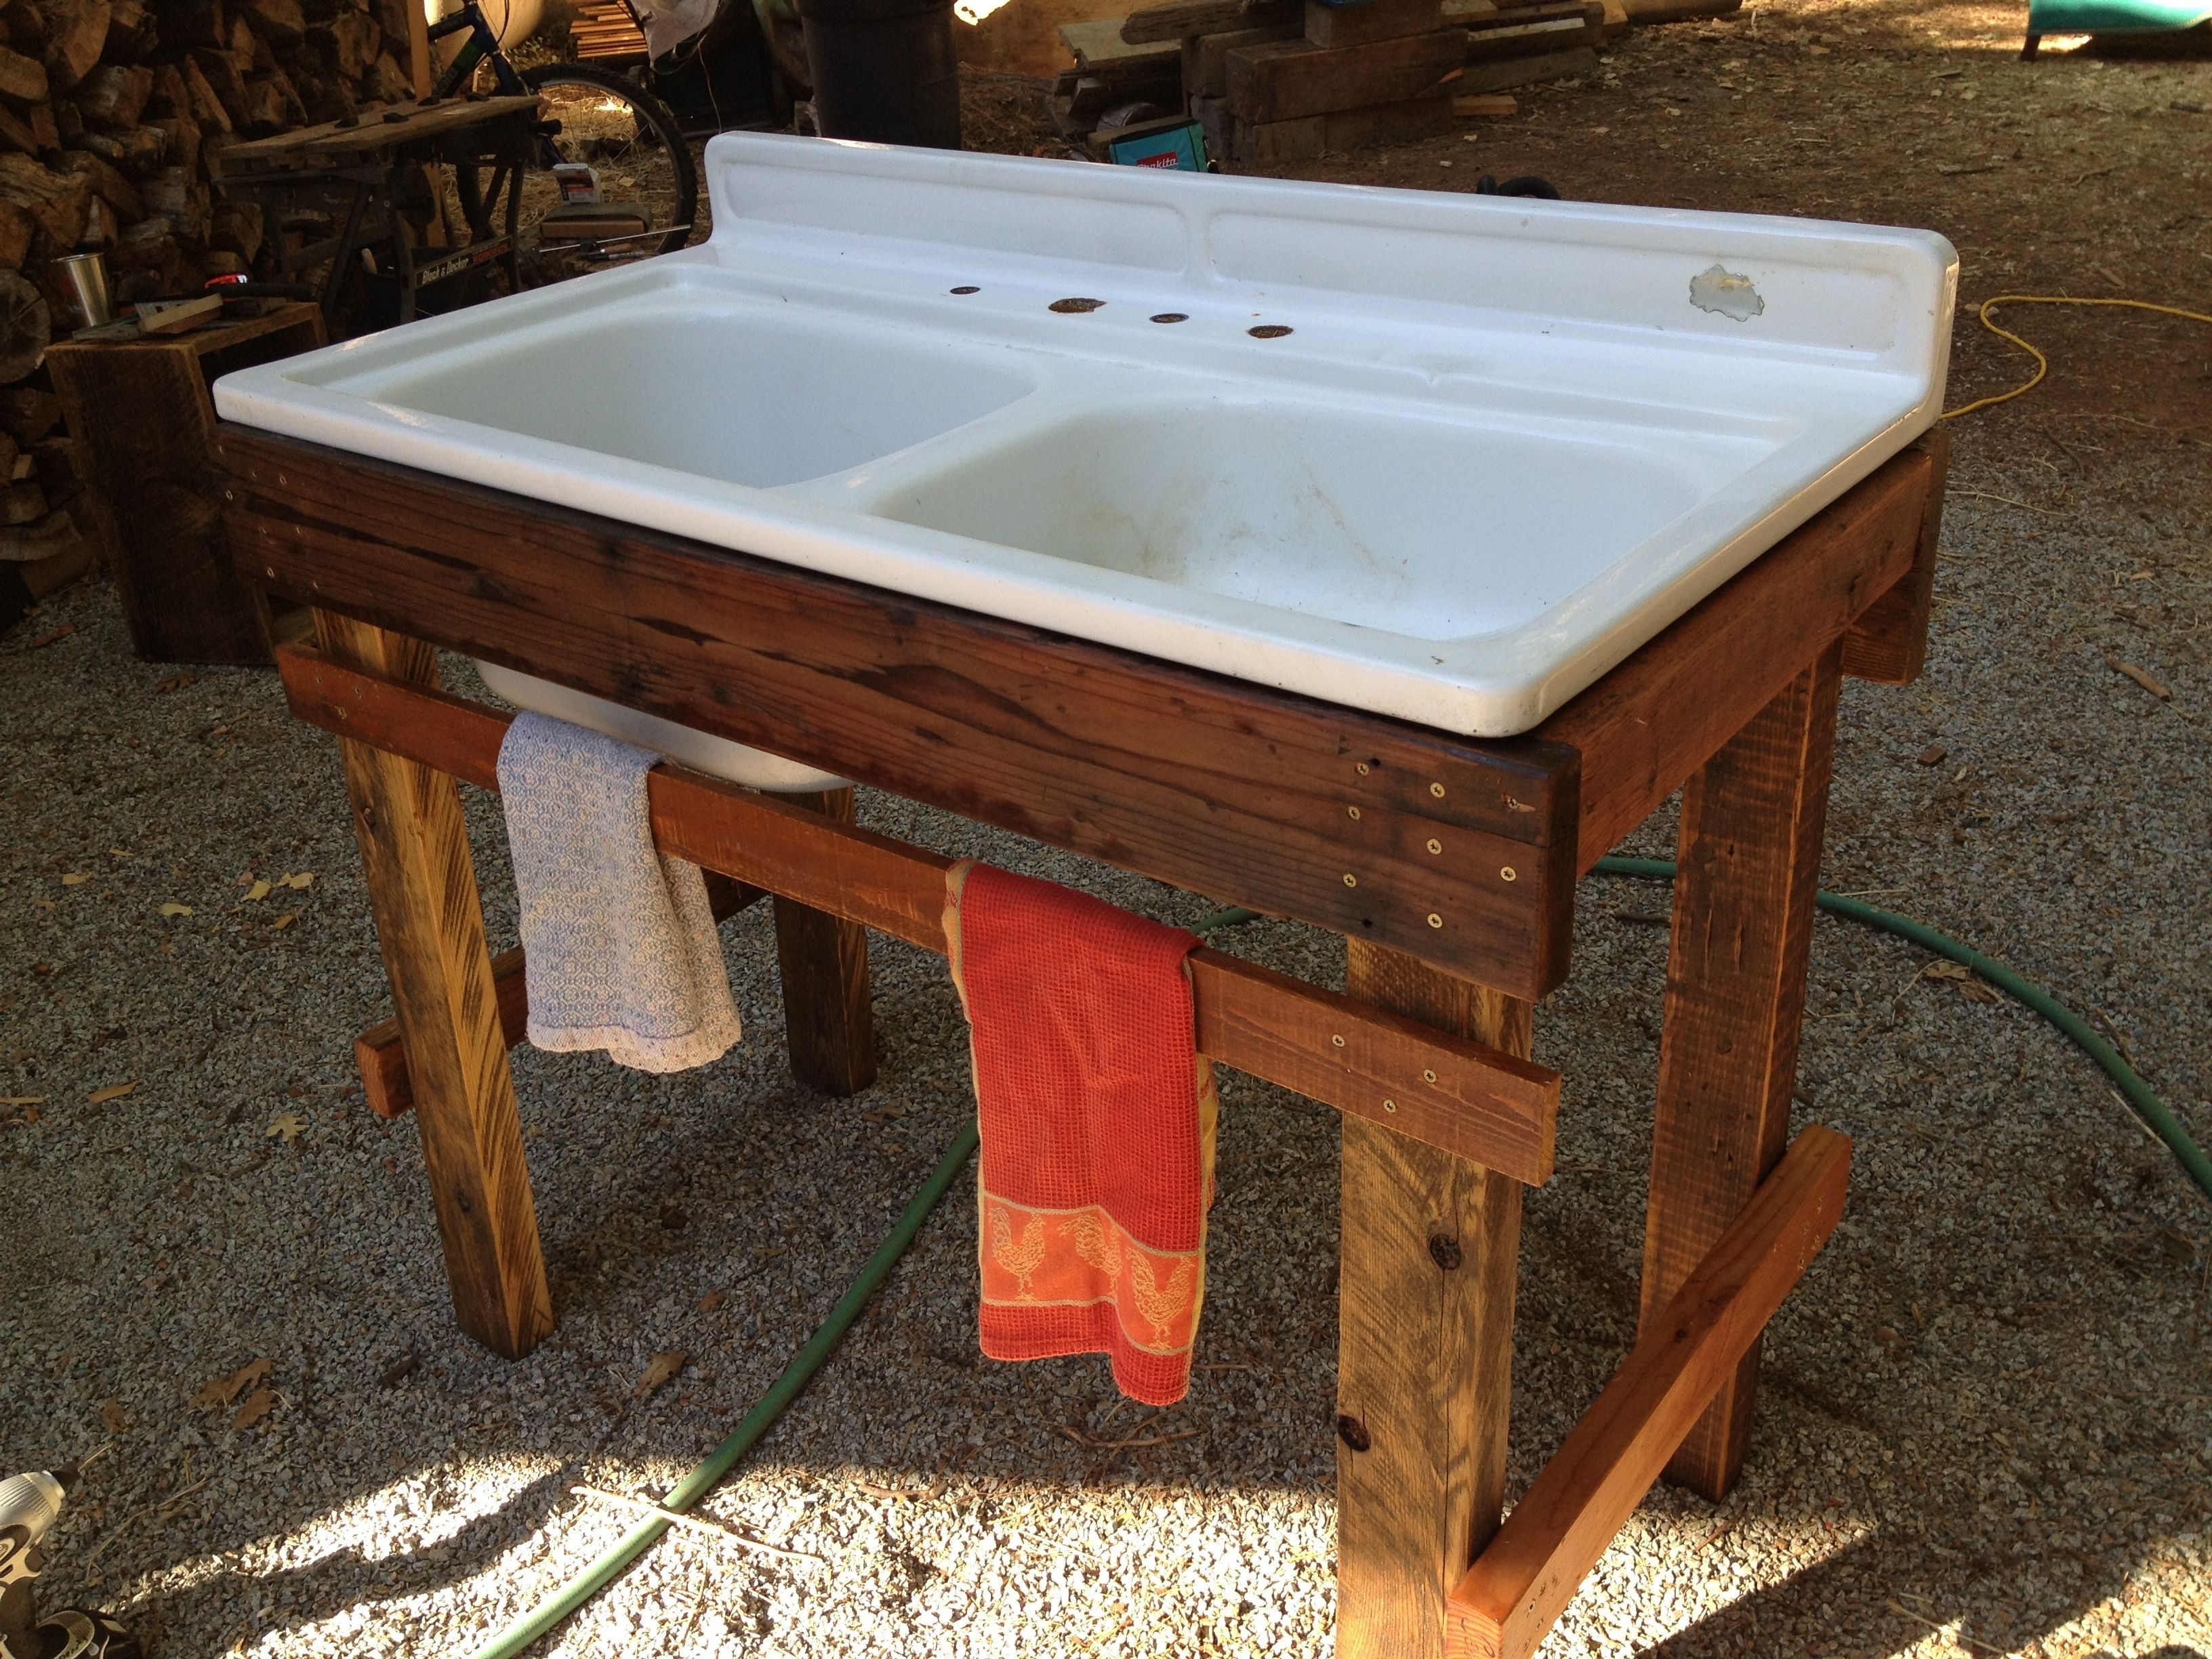 My new outdoor sink made from repurposed wood found sink for Outdoor kitchen sink